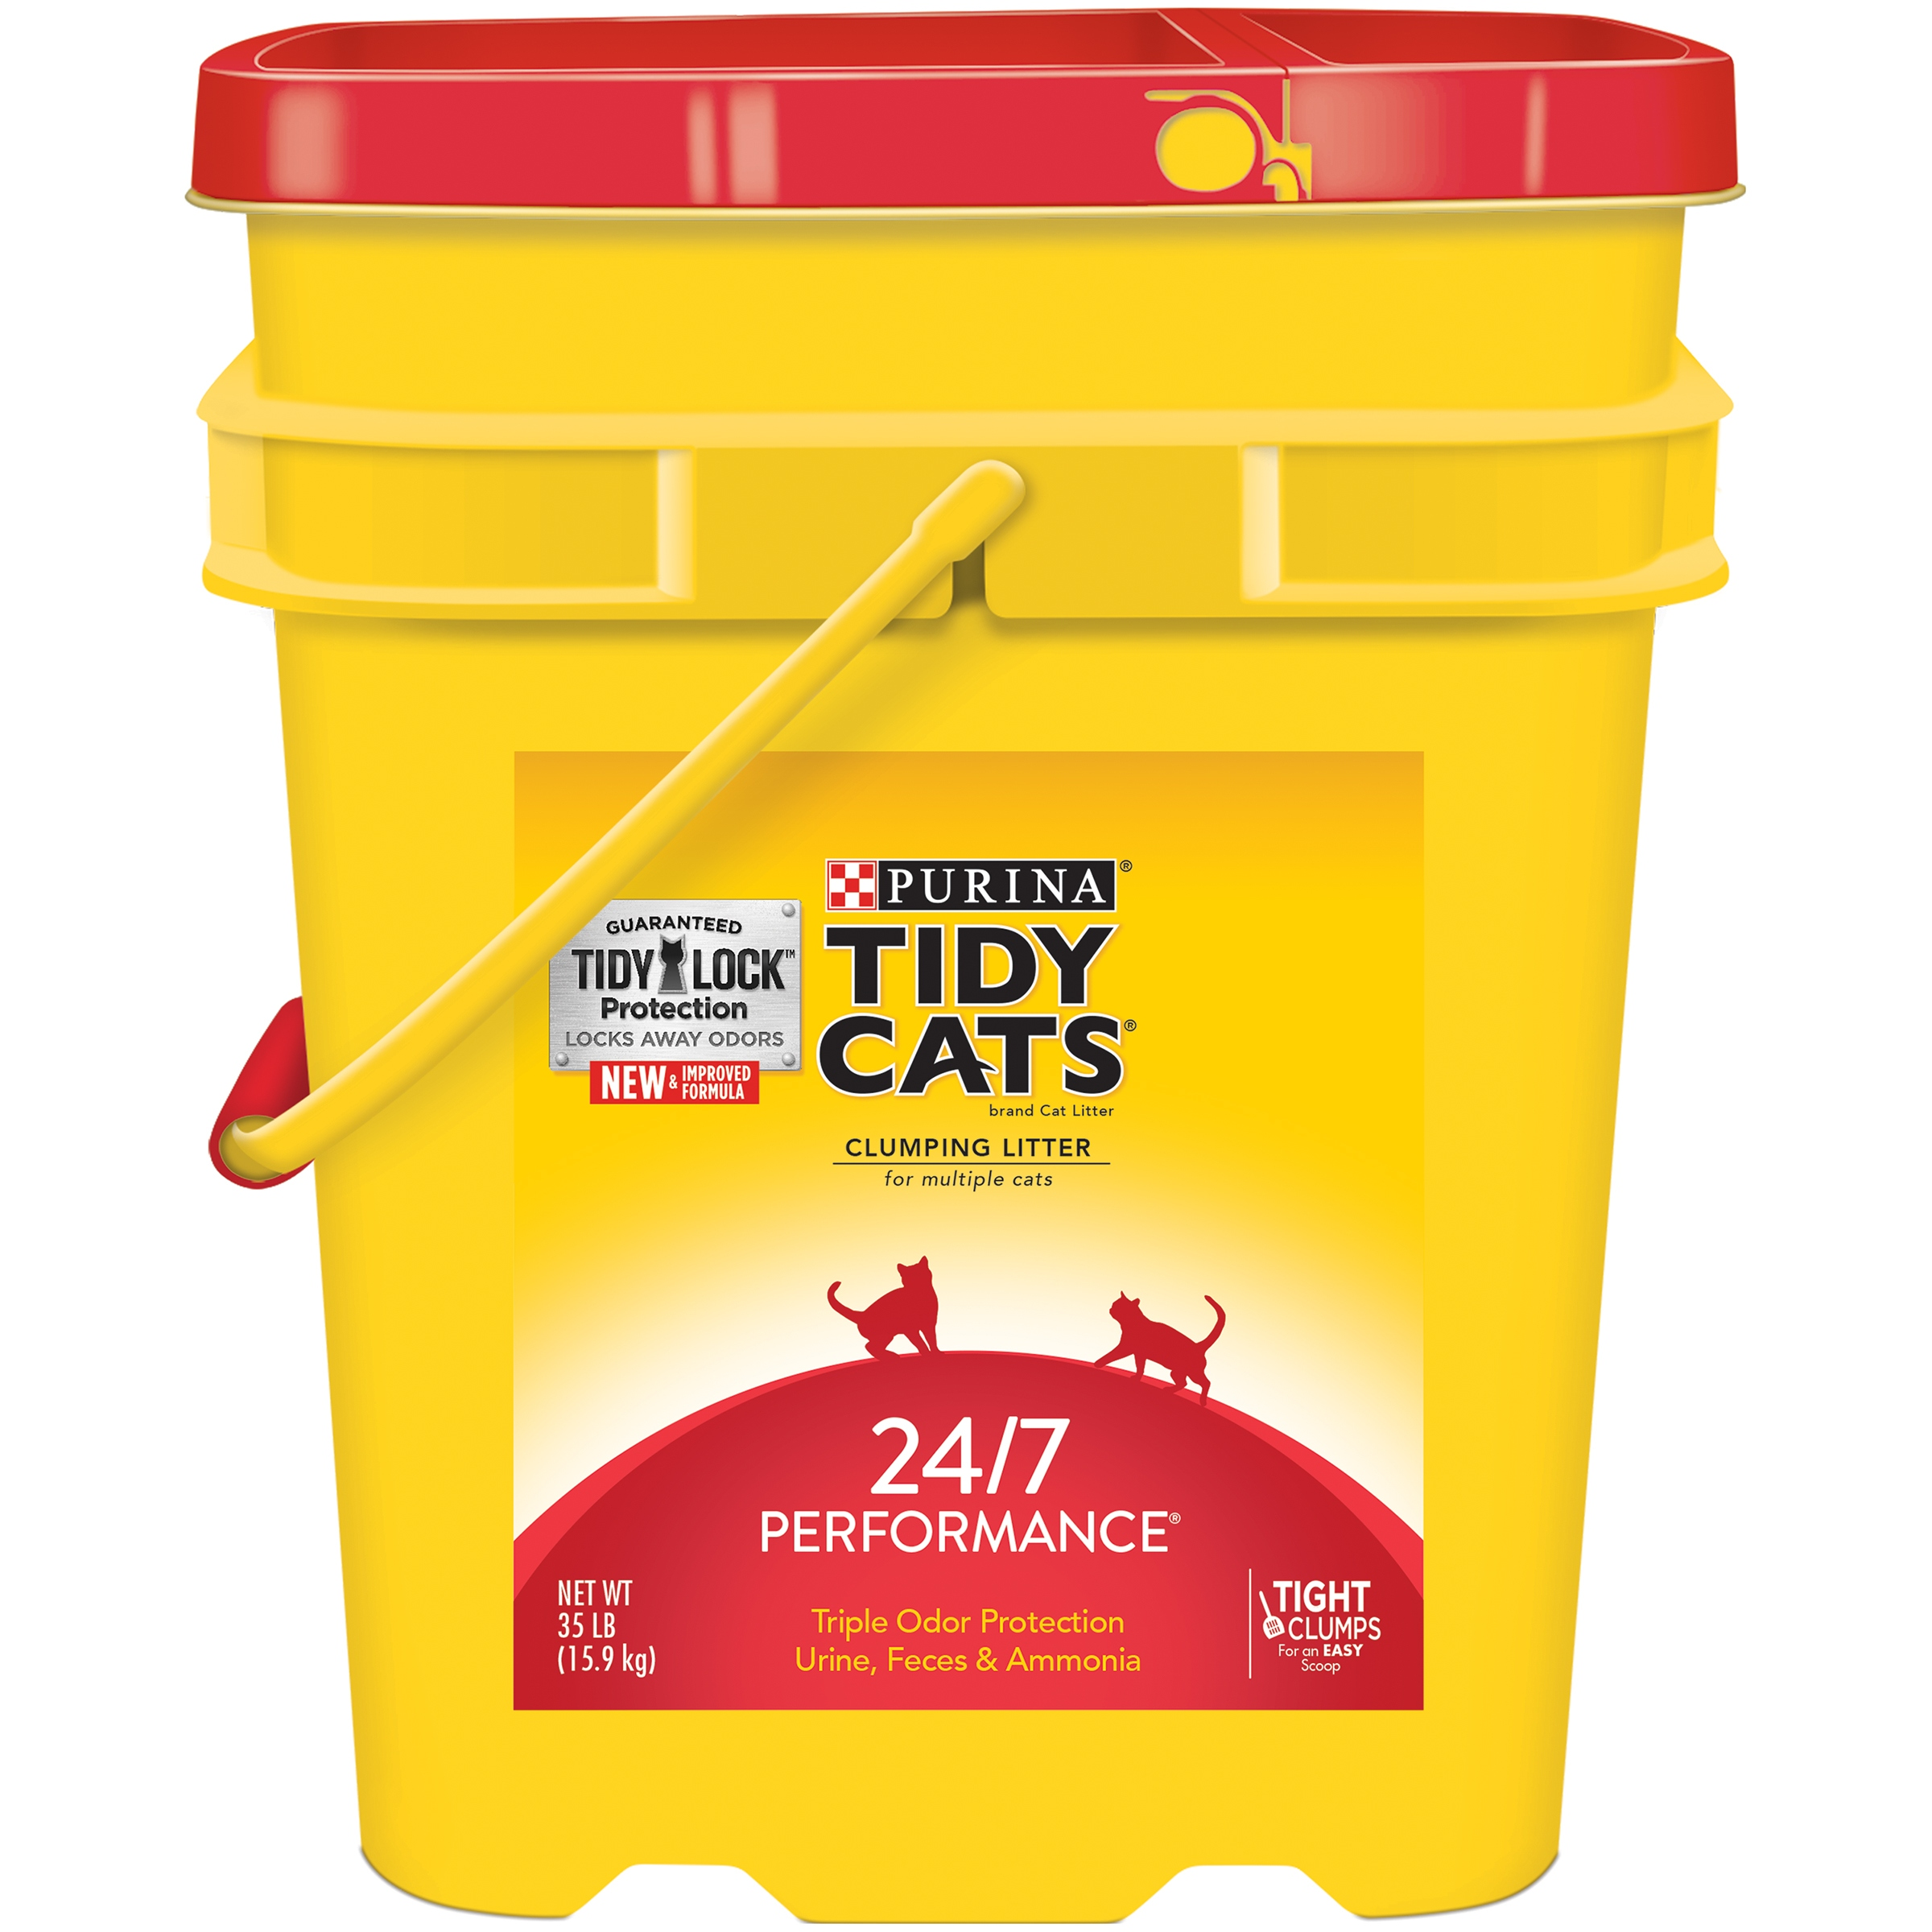 Purina Tidy Cats 24/7 Performance Multi-cat Clumping Cat Litter, 35 Lb.